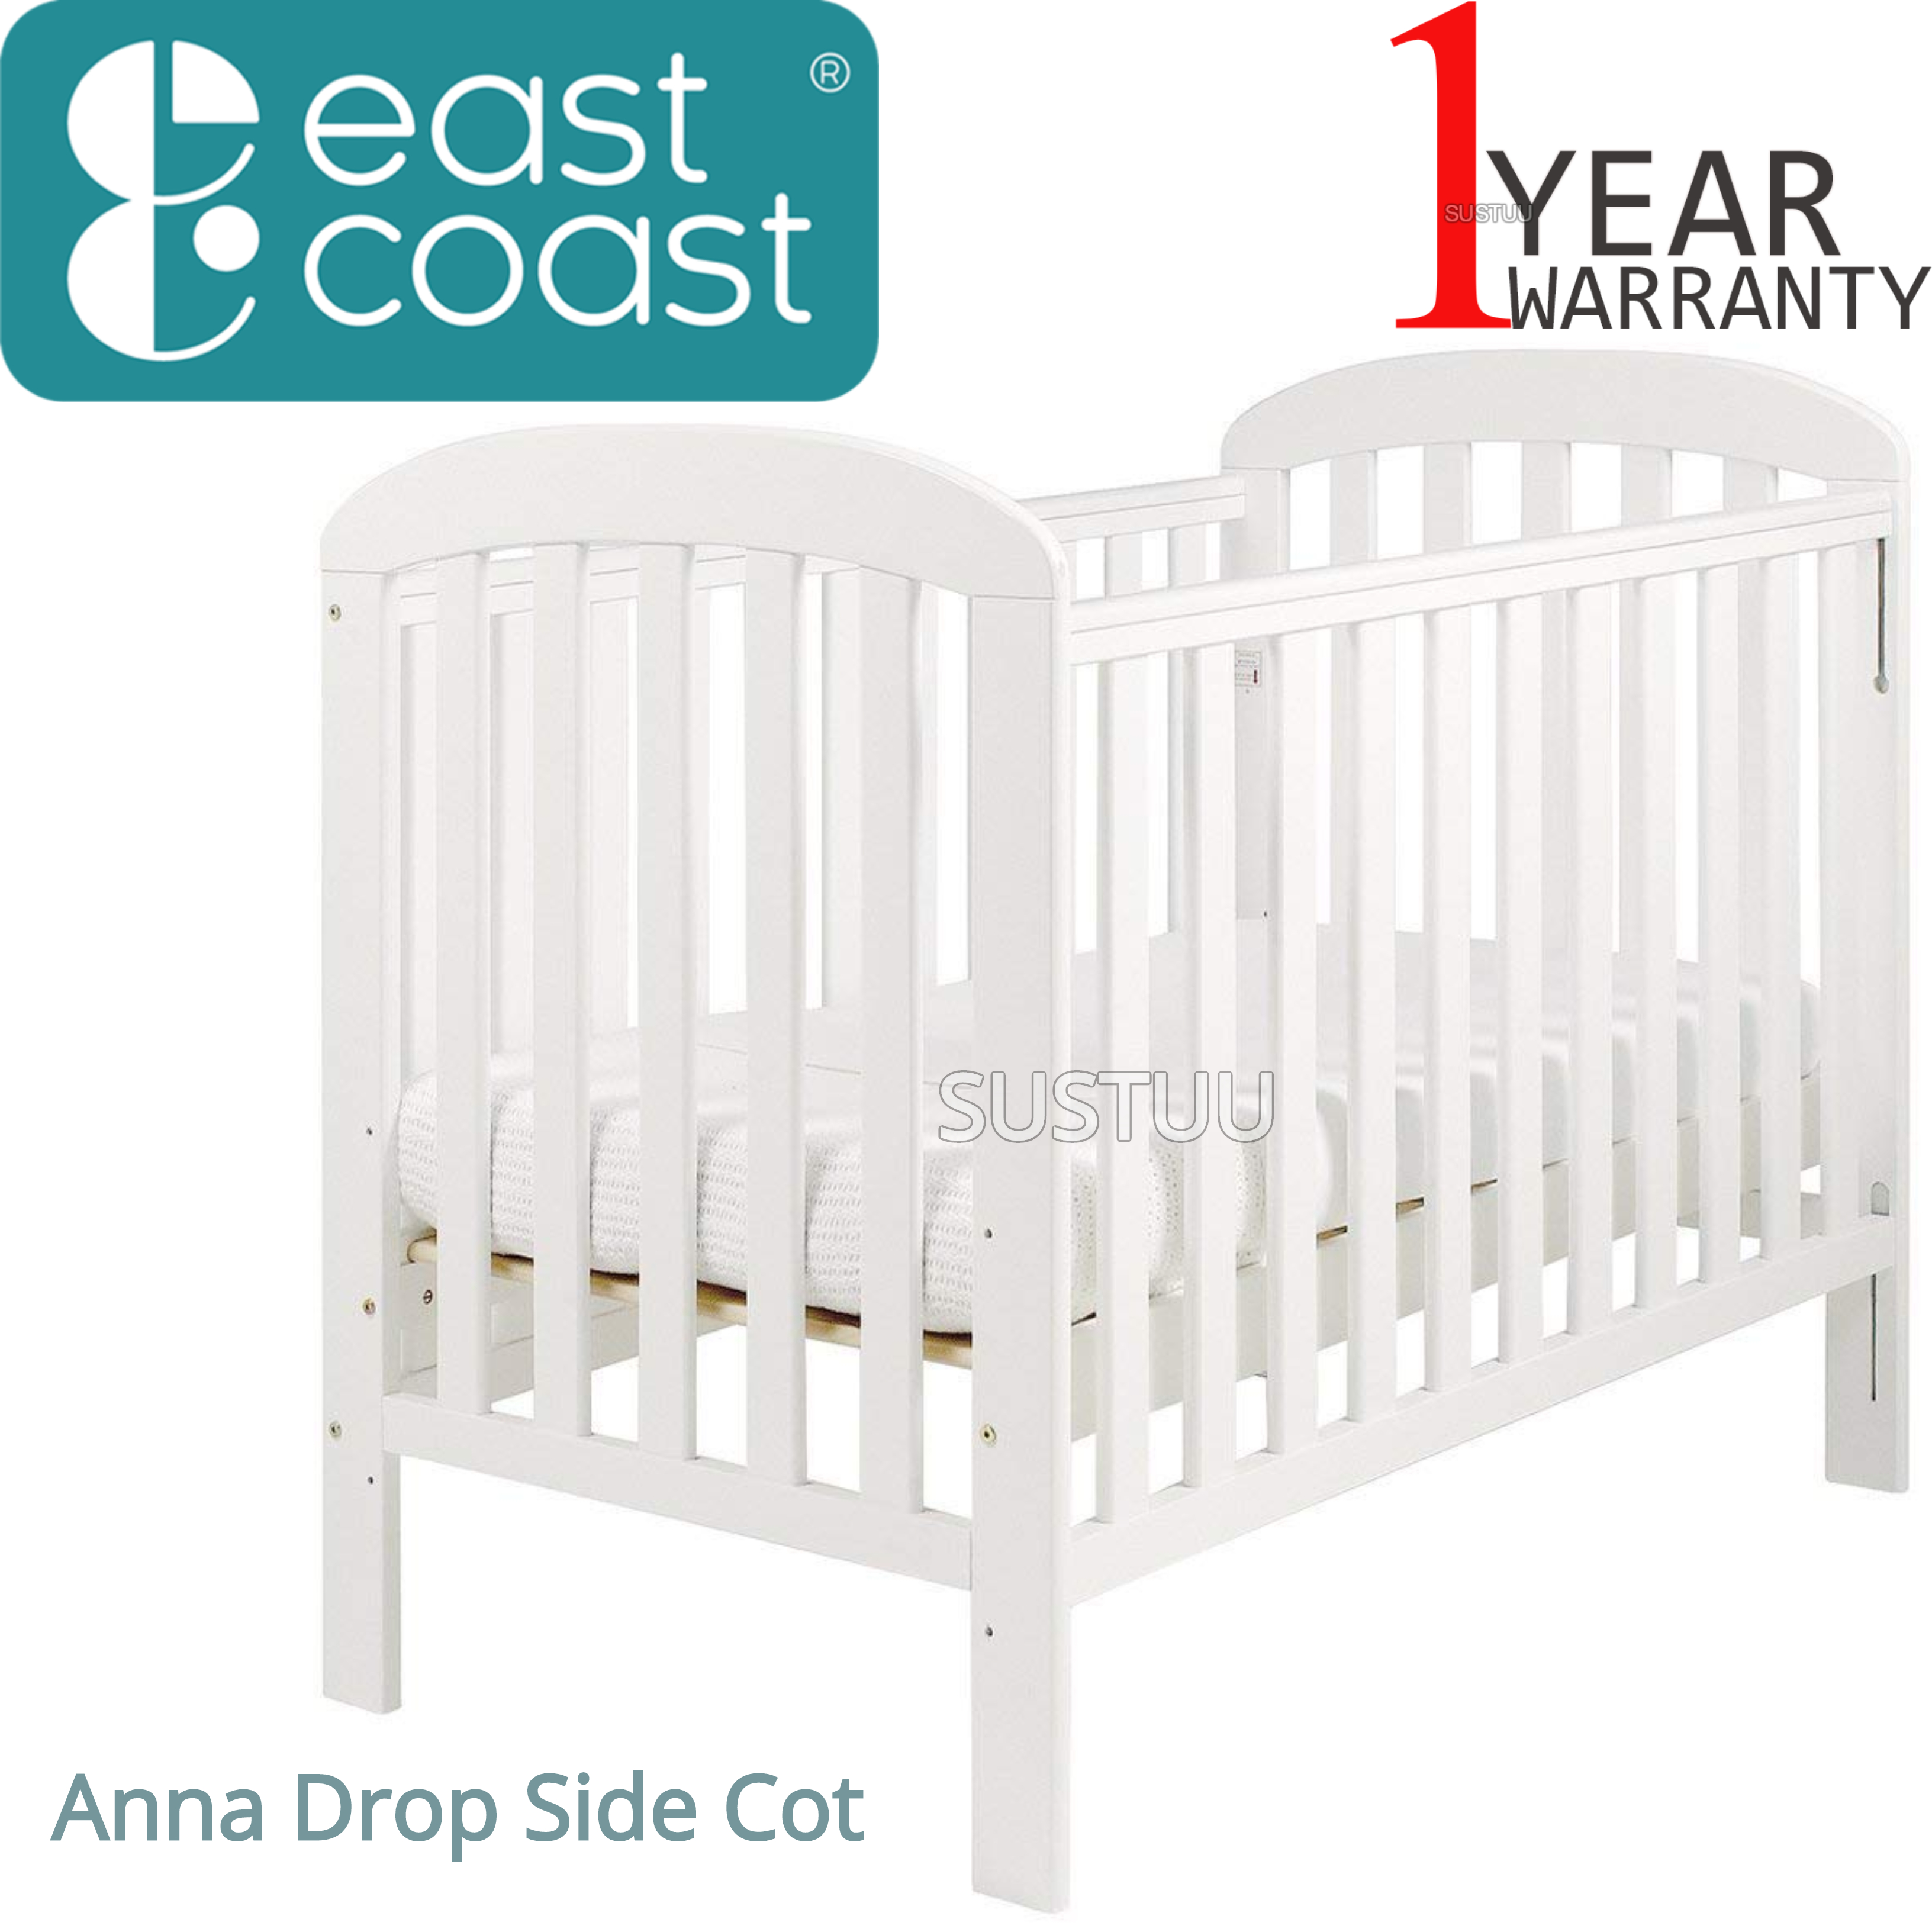 East Coast Anna Drop Side Cot | 3 Base Heights + 2 Protective Teething Rails | White